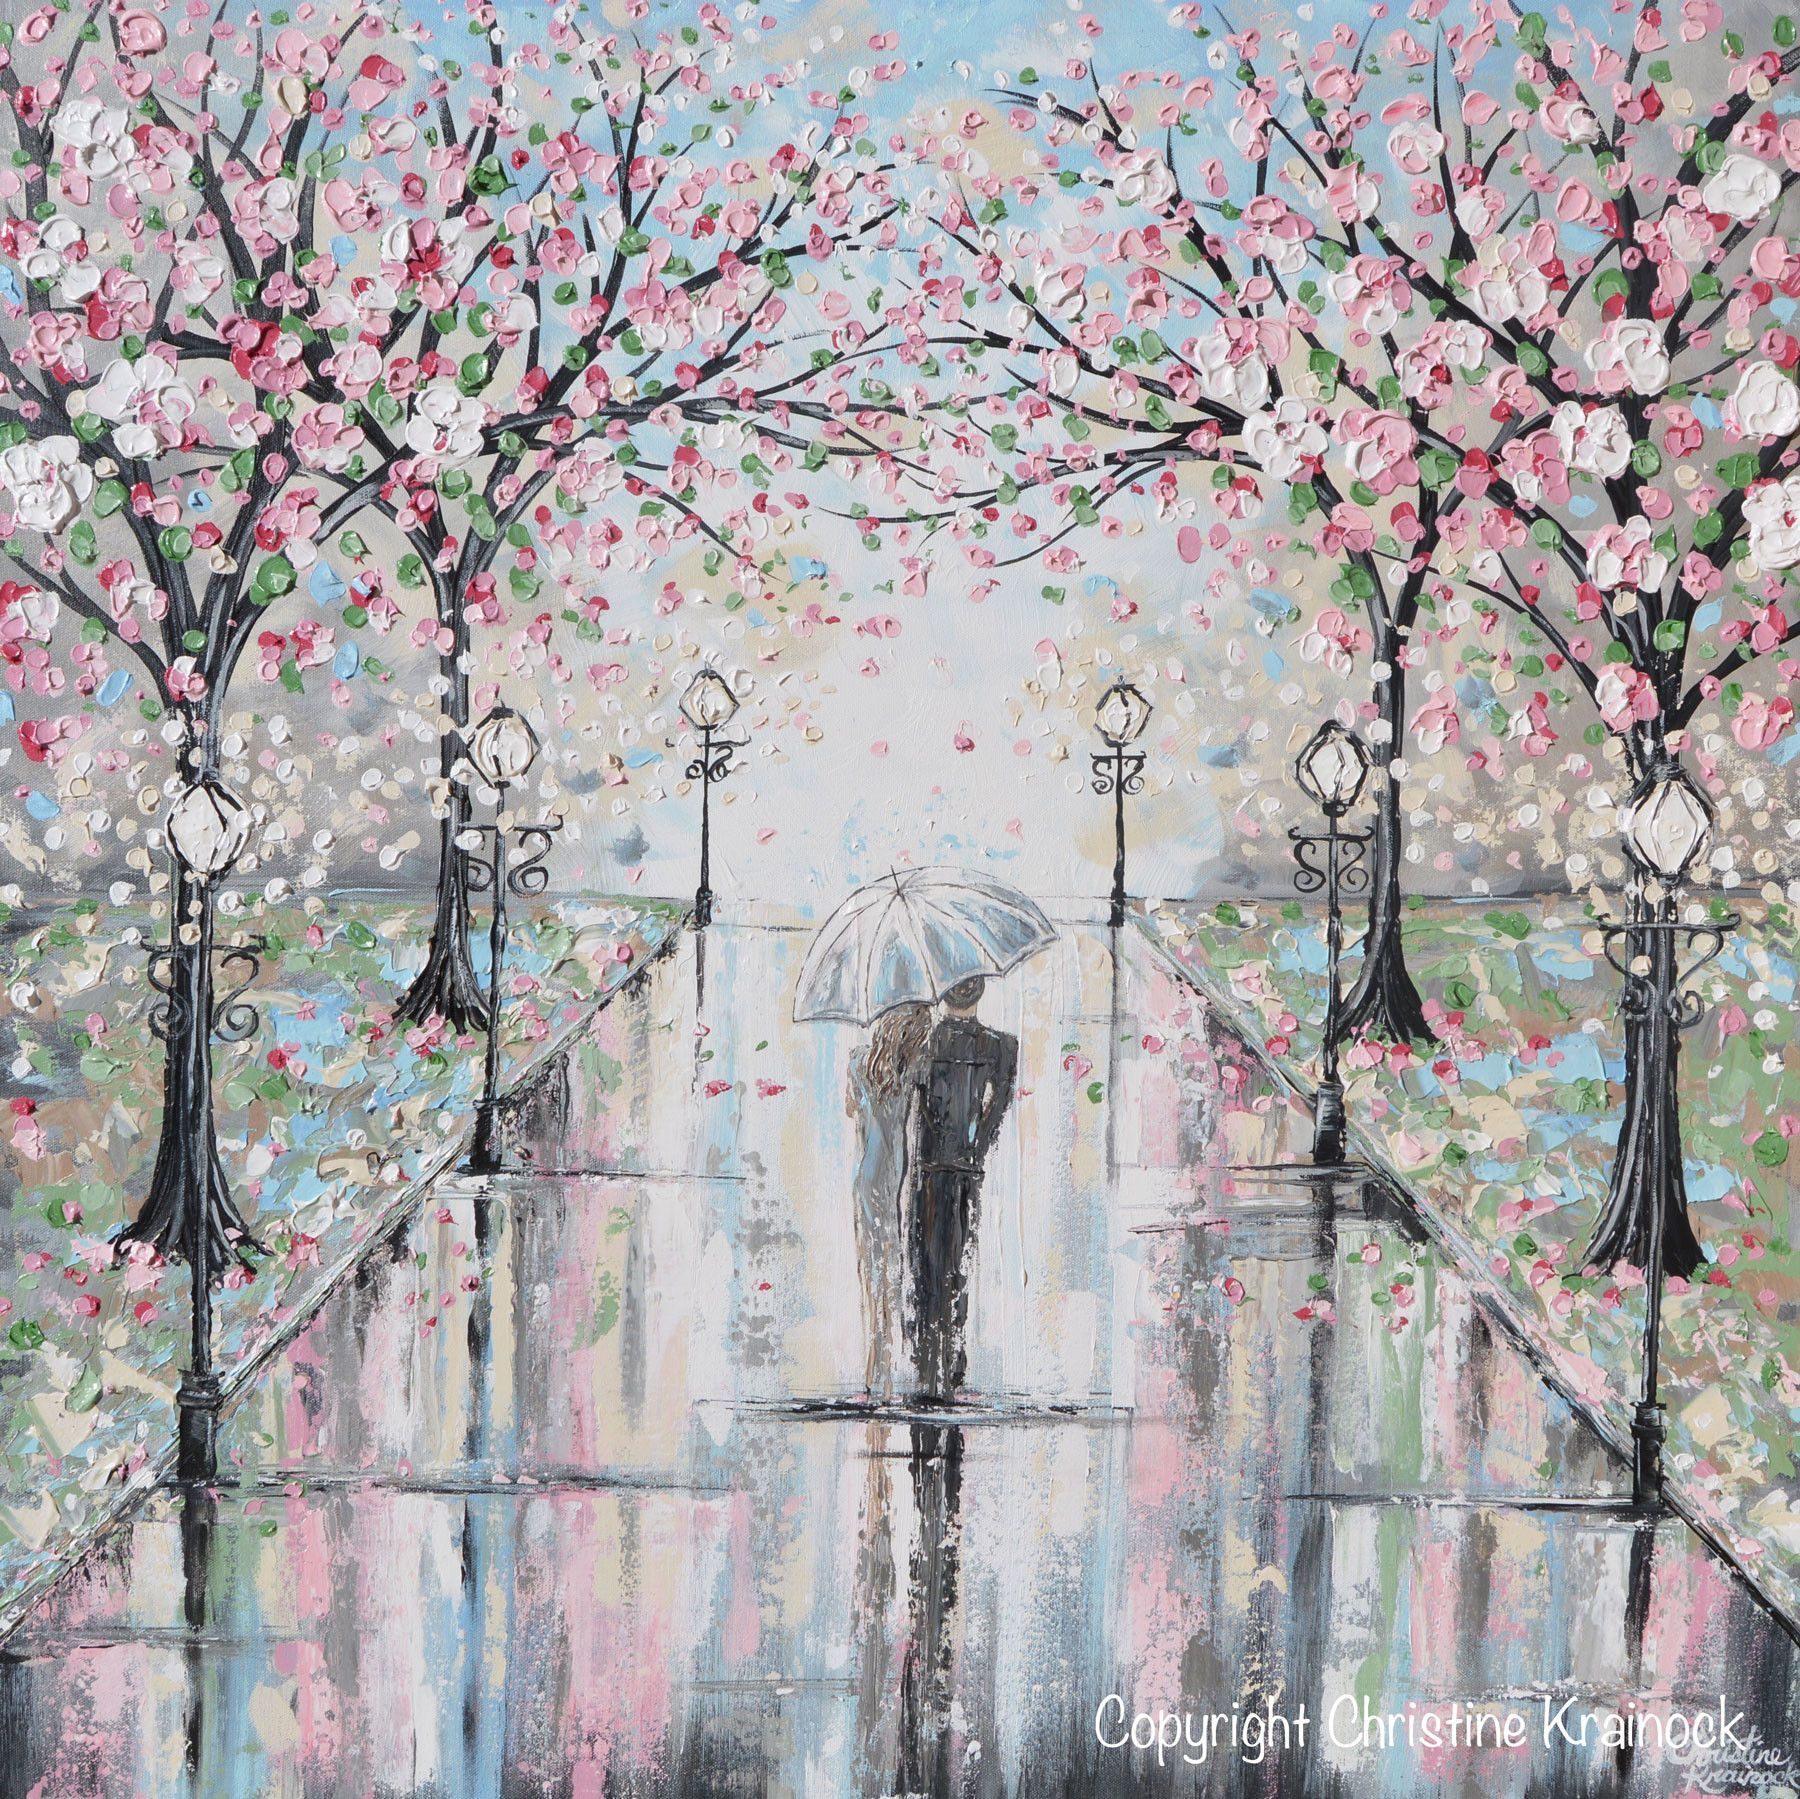 Original Art Abstract Painting Couple With Umbrella Walk Rain Pink Cherry Trees Textured White Grey Wall Art Decor 36x36 Grey Wall Art Original Abstract Art Painting Abstract Painting